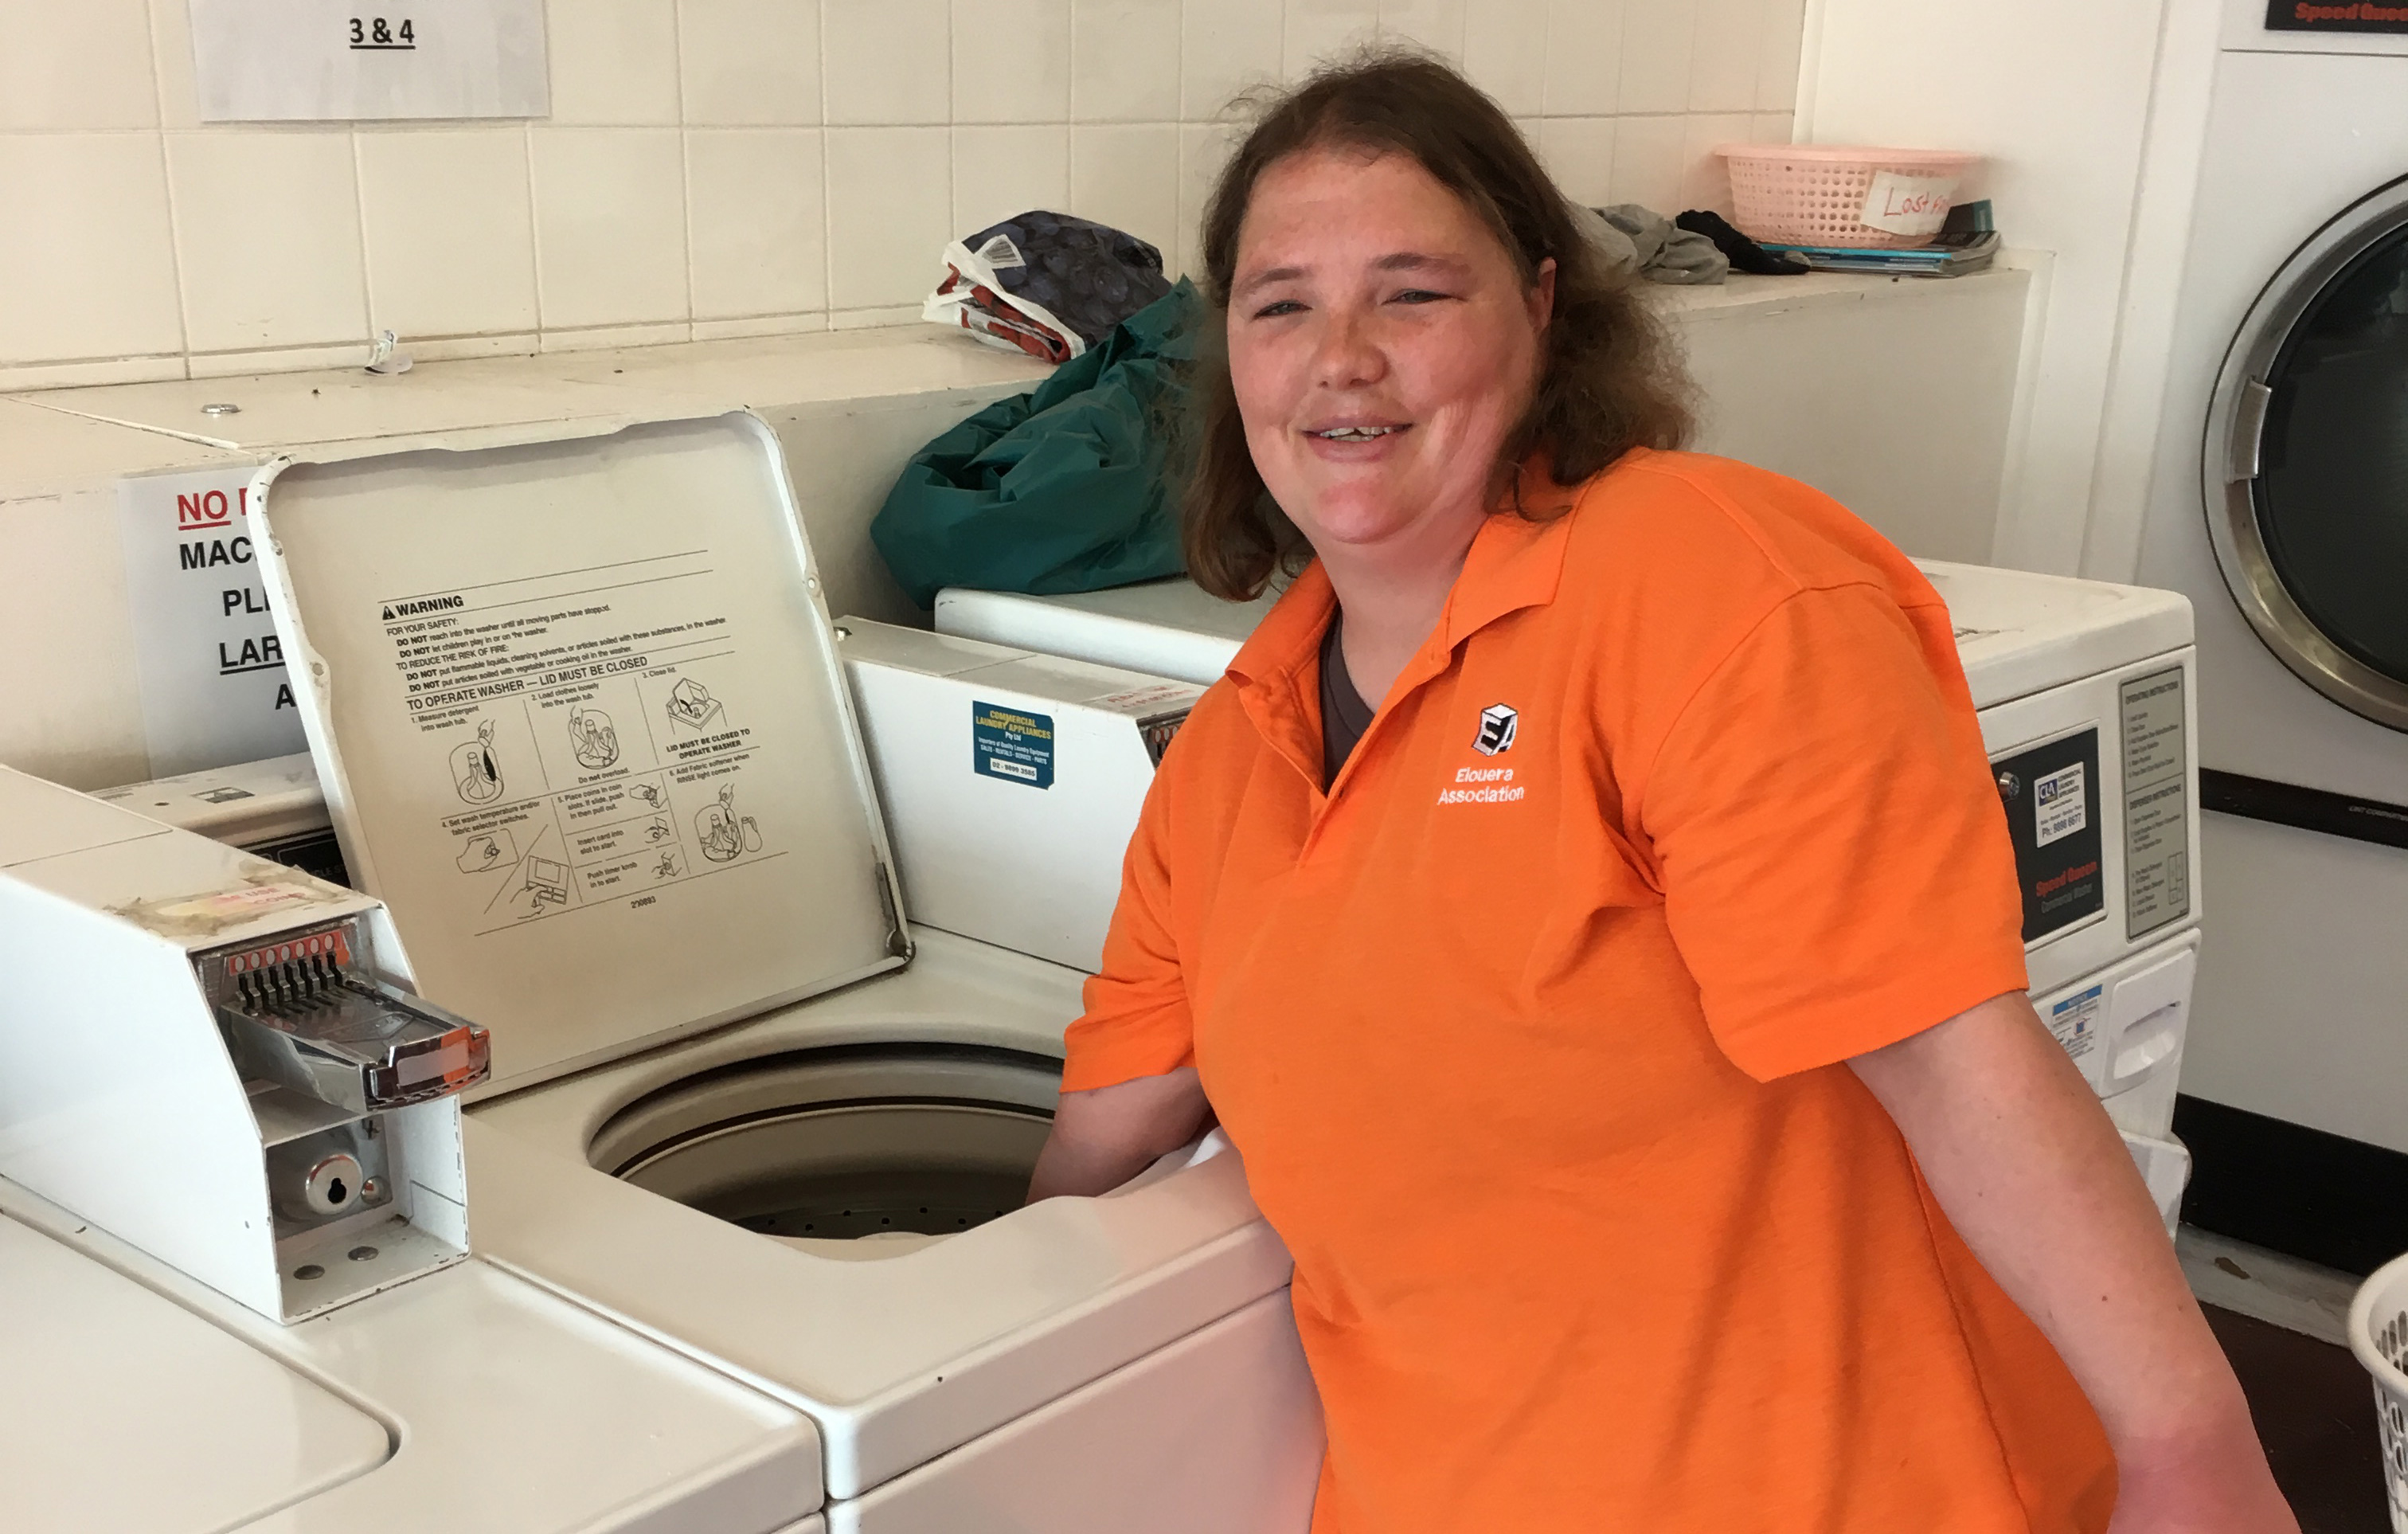 Woman Tarah Ross reaching into washing machine